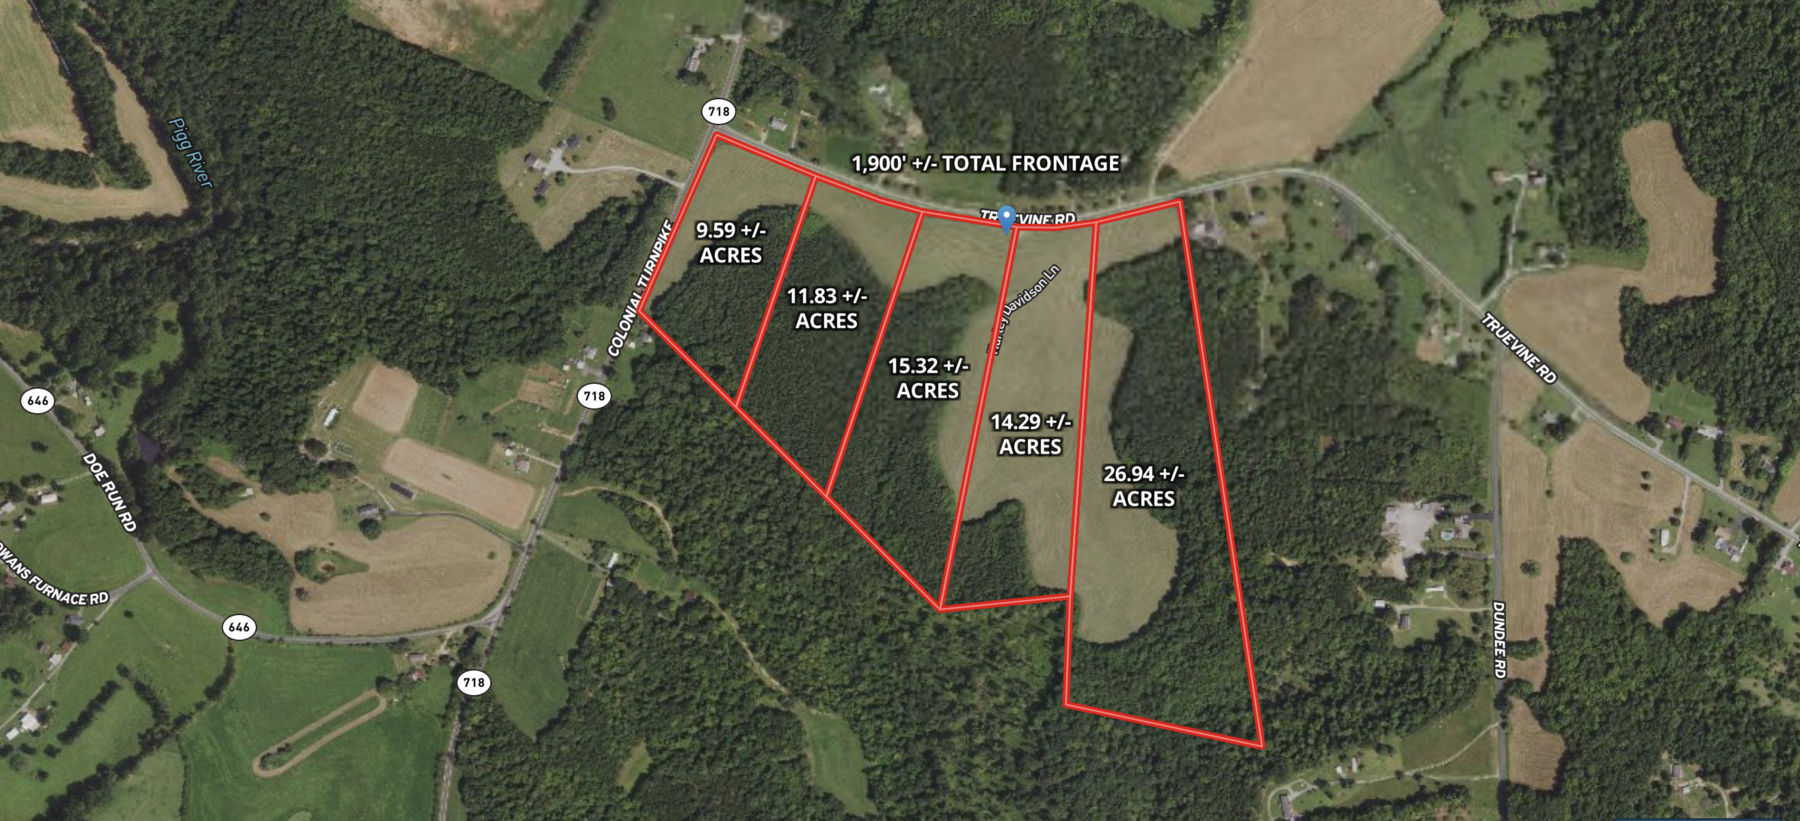 Image for Parcel 3 (15.32 +/- acres) of 5 Individual Land Parcels Totaling 77.9 +/- Acres in Franklin County, VA, Only 10 Miles from Smith Mountain Lake--ONLINE ONLY BIDDING!!